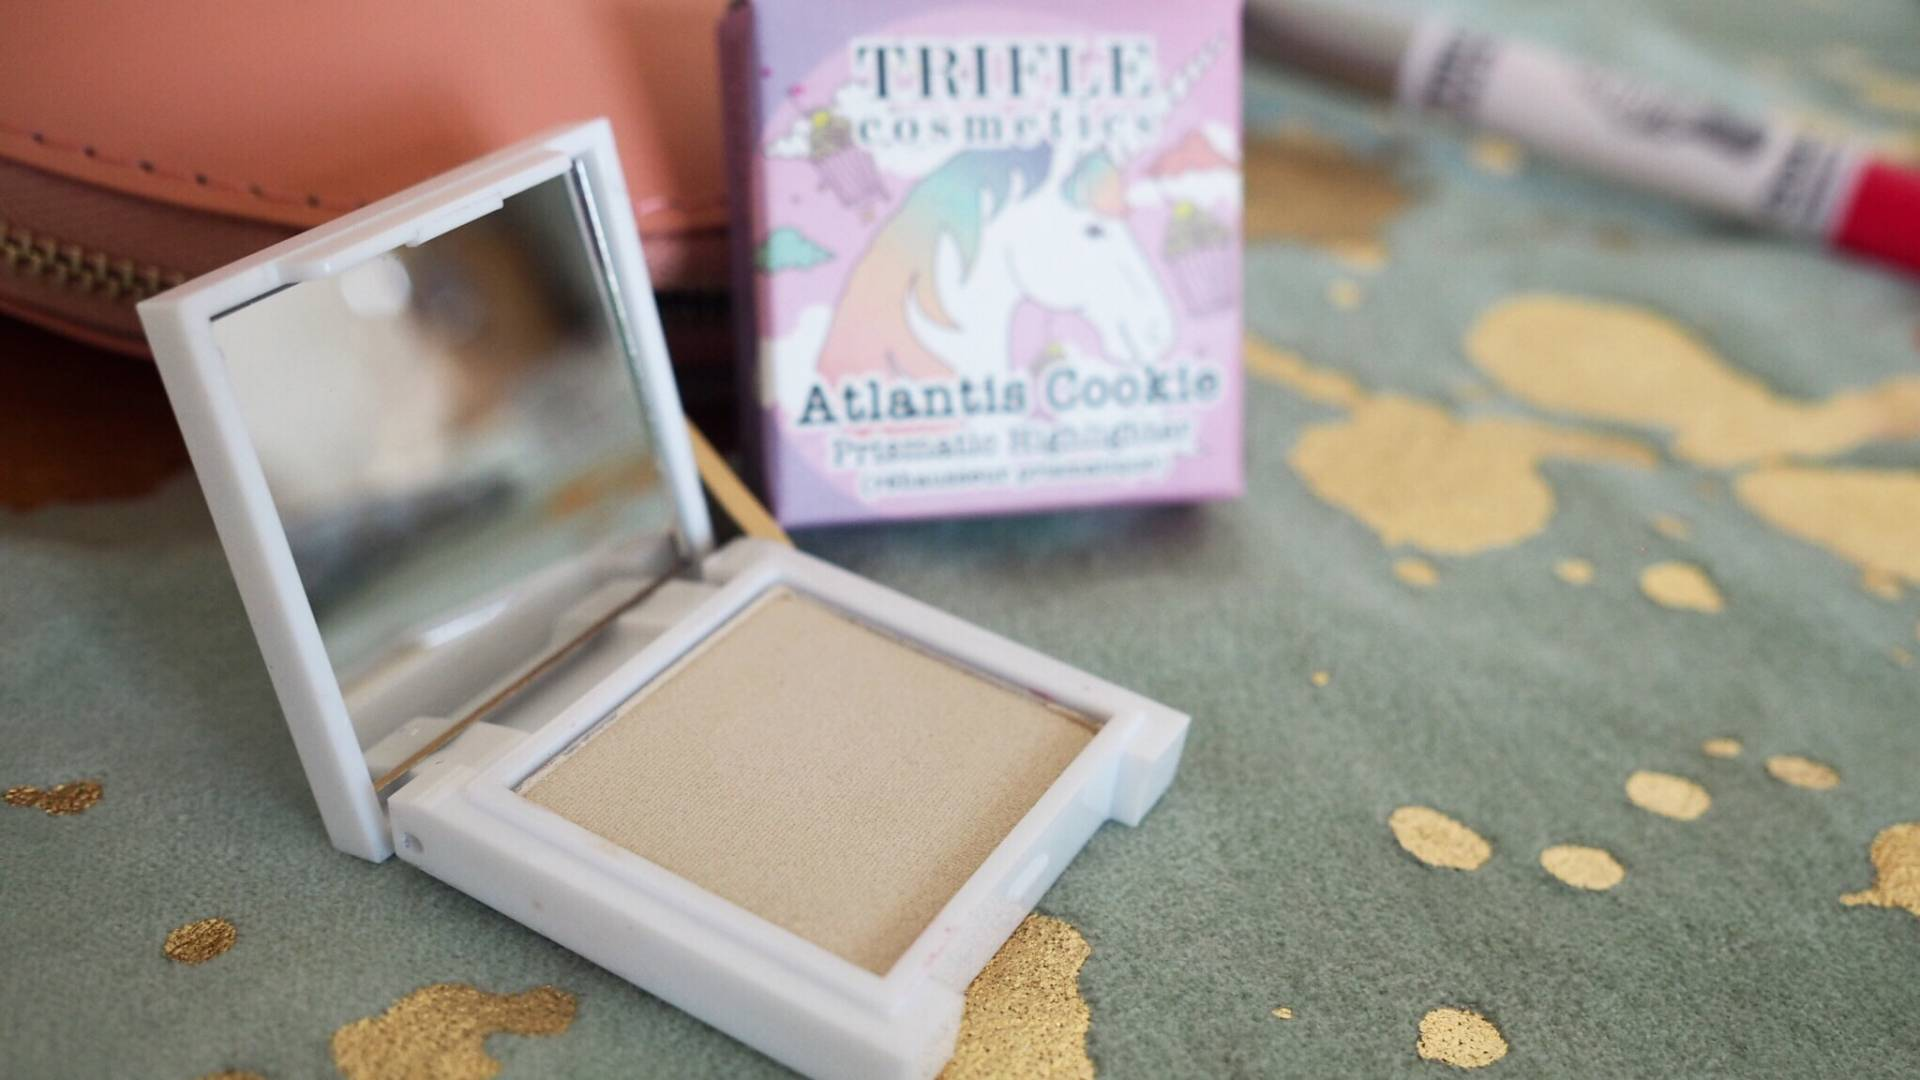 Tried & Tested | TRIFLE | The Prettiest Vegan Make Up | MEGAN TAYLOR